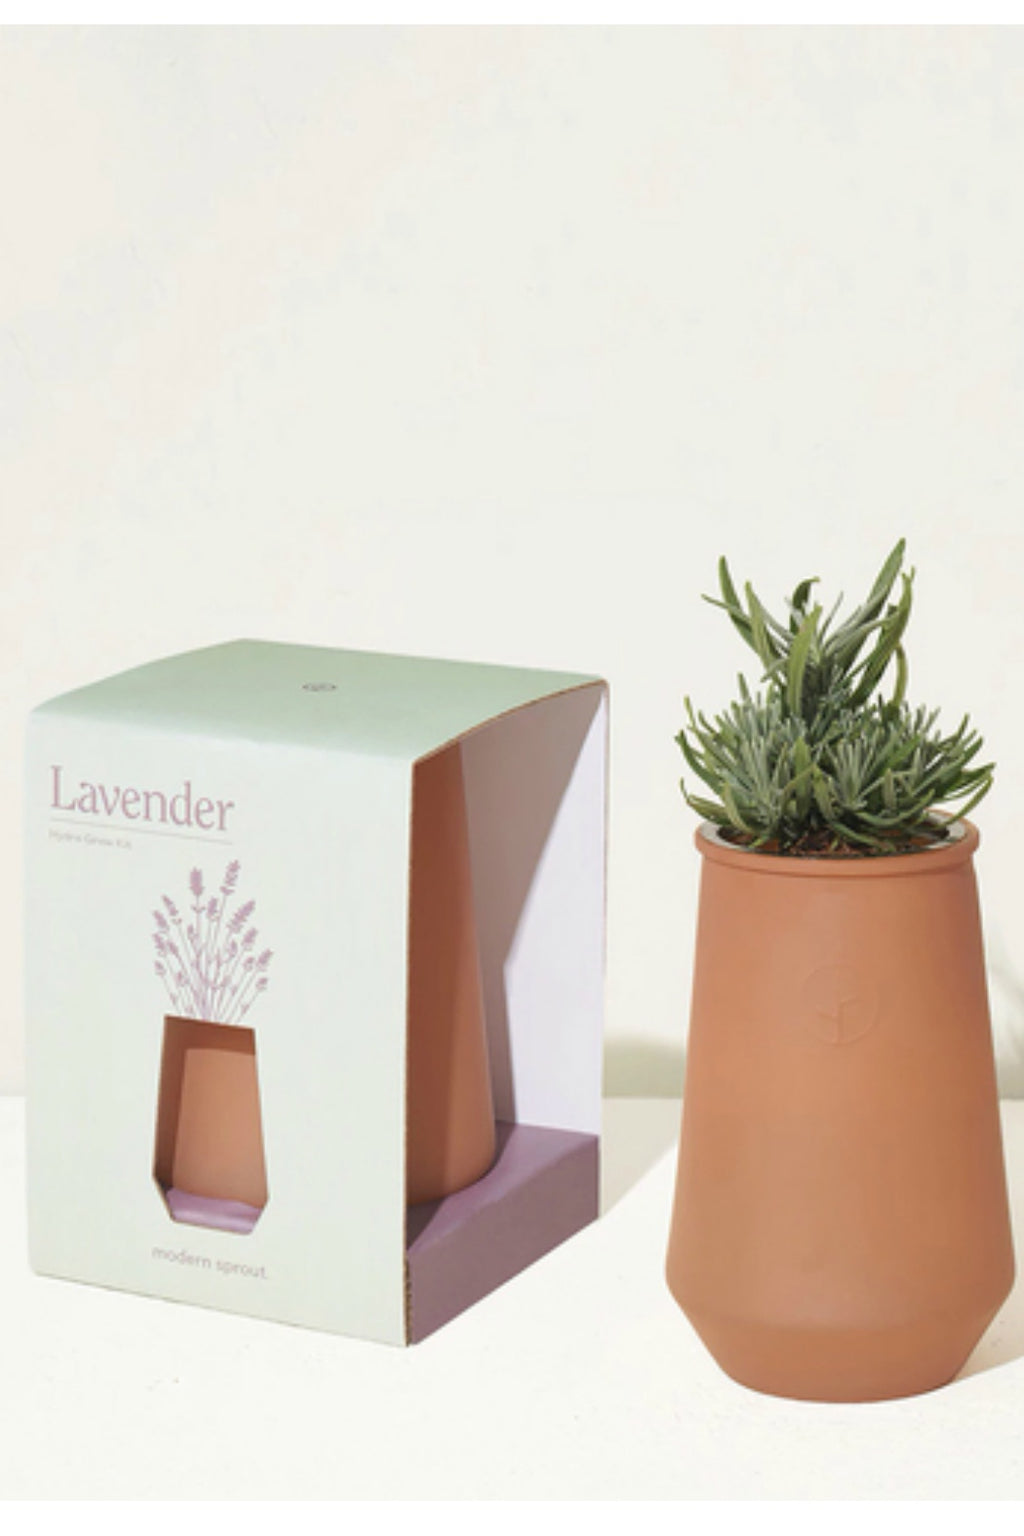 Modern Sprout Sahara Tapered Tumbler Hydroponic Grow Kit - Lavender